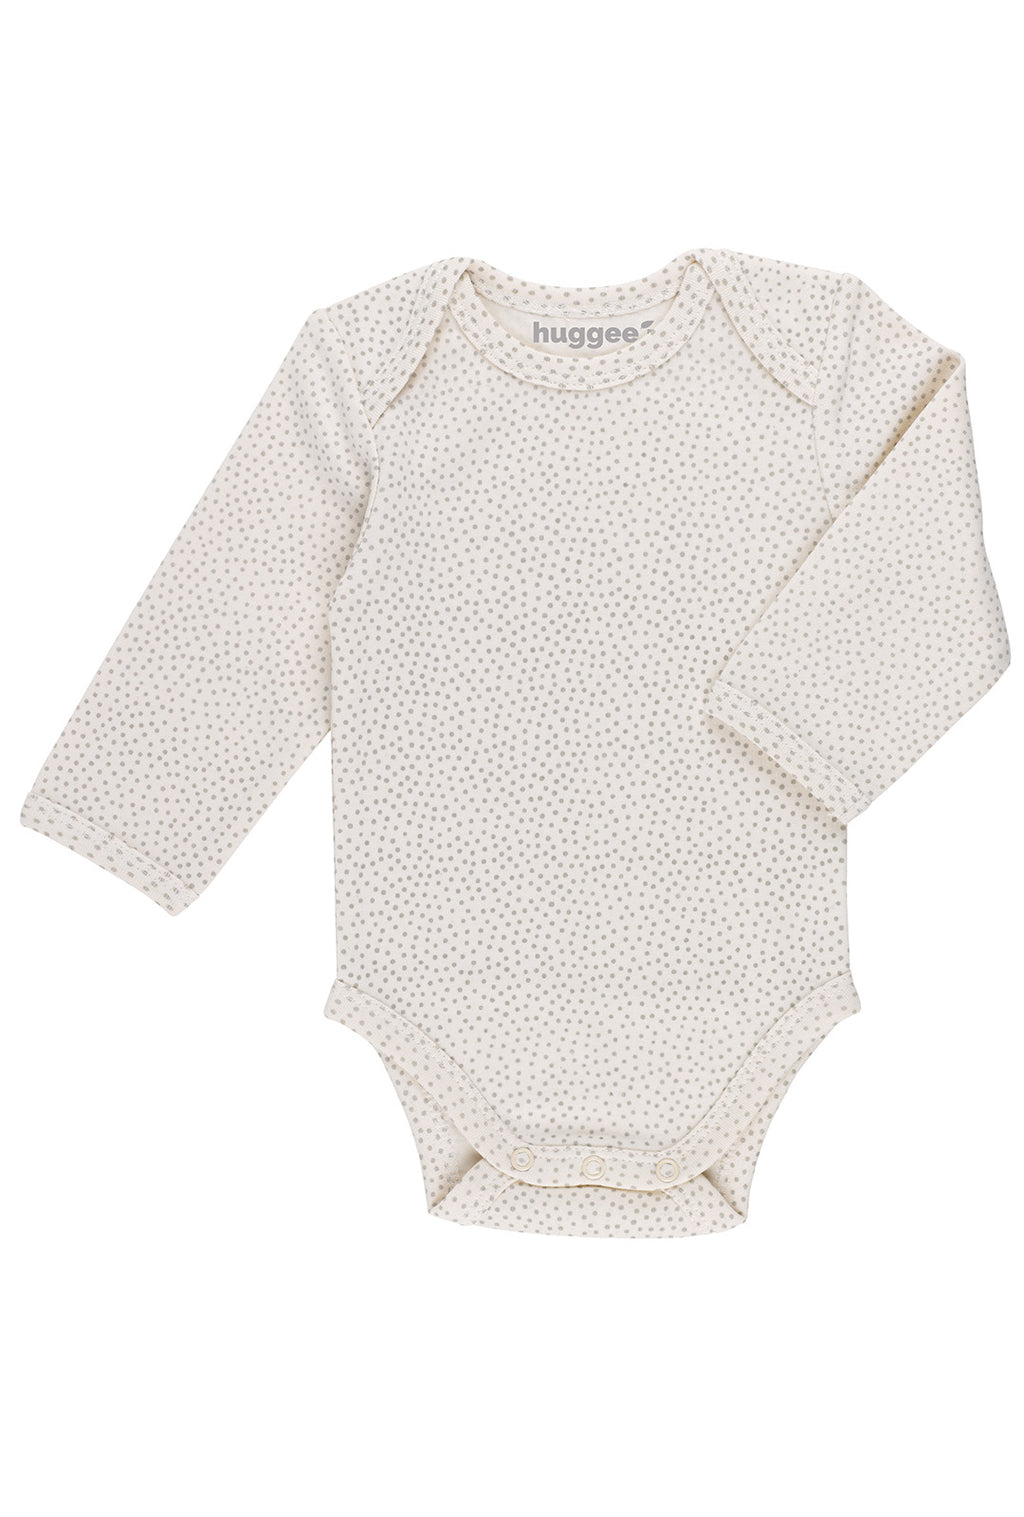 Mini Polka Dots Lap Shoulder Body LS